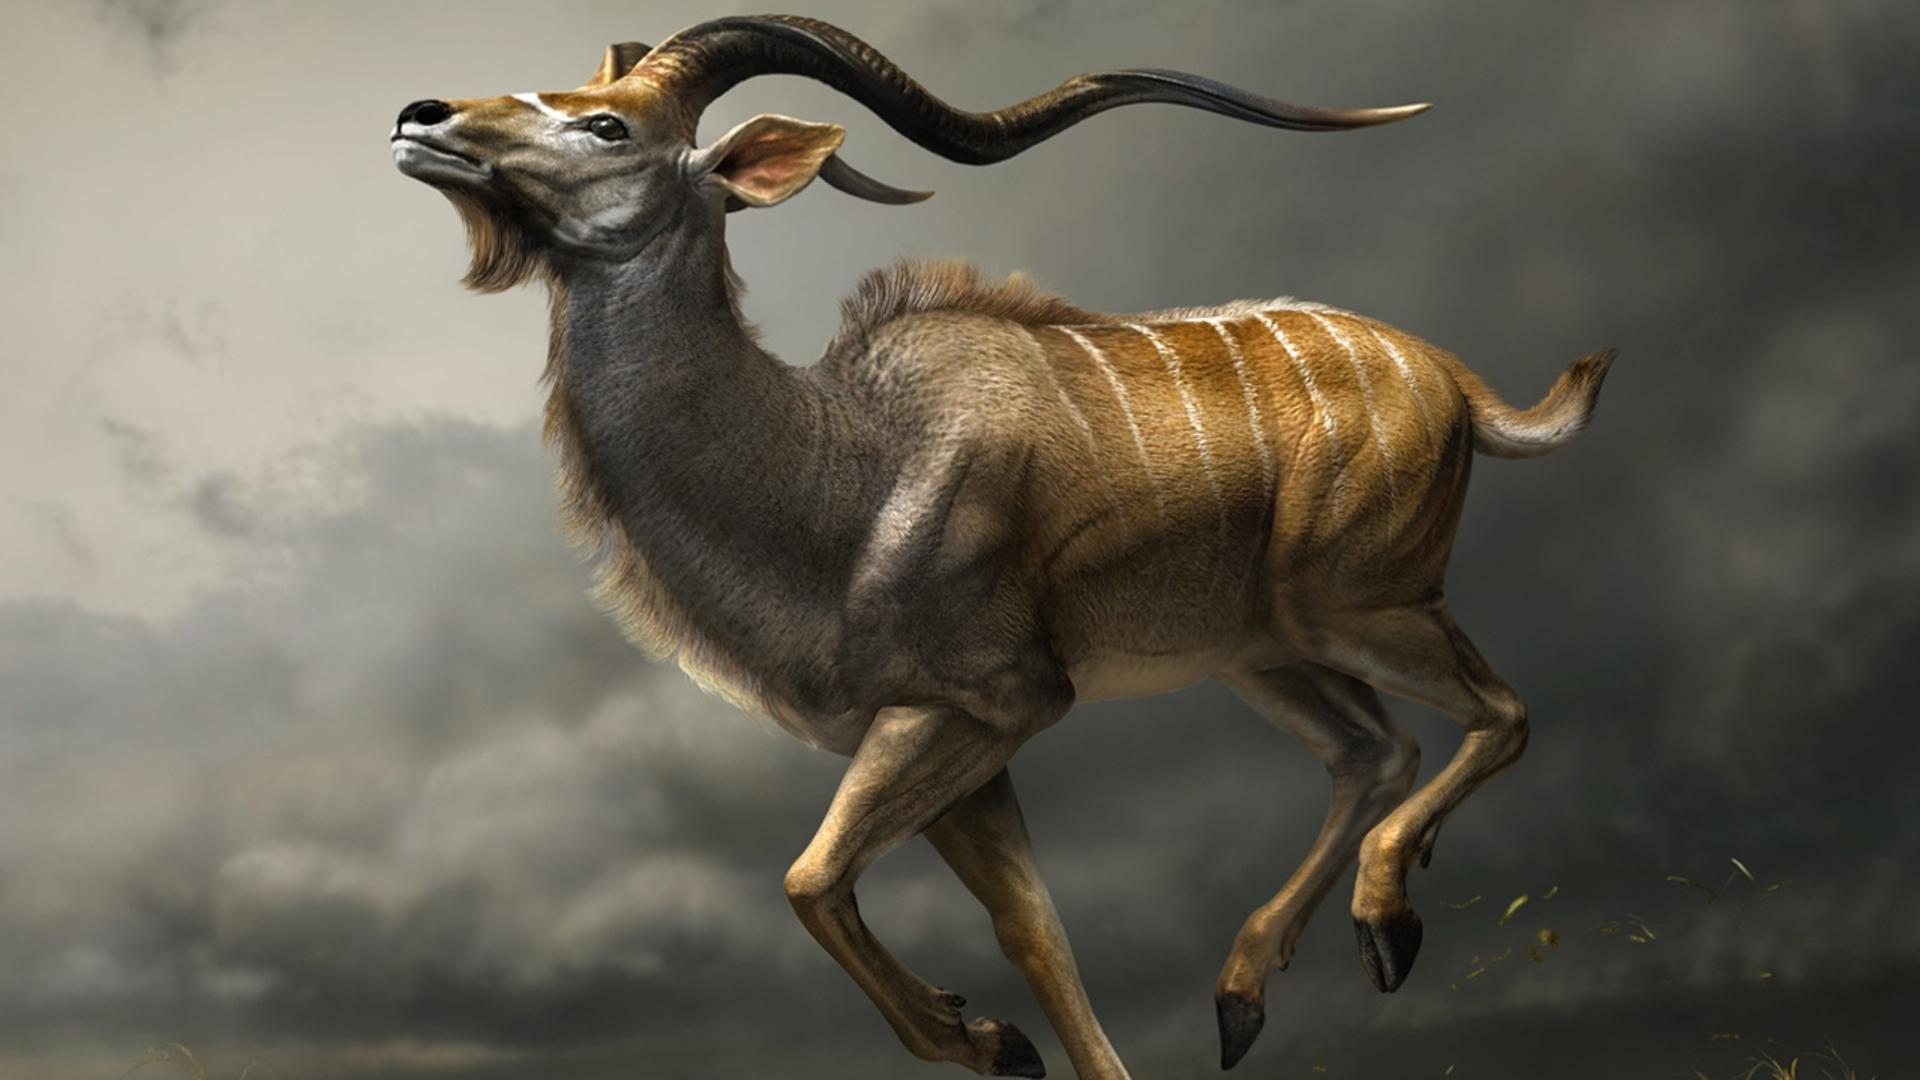 1920x1080 Antelope Wallpapers High Resolution #M4AR24H | WallpapersExpert.com